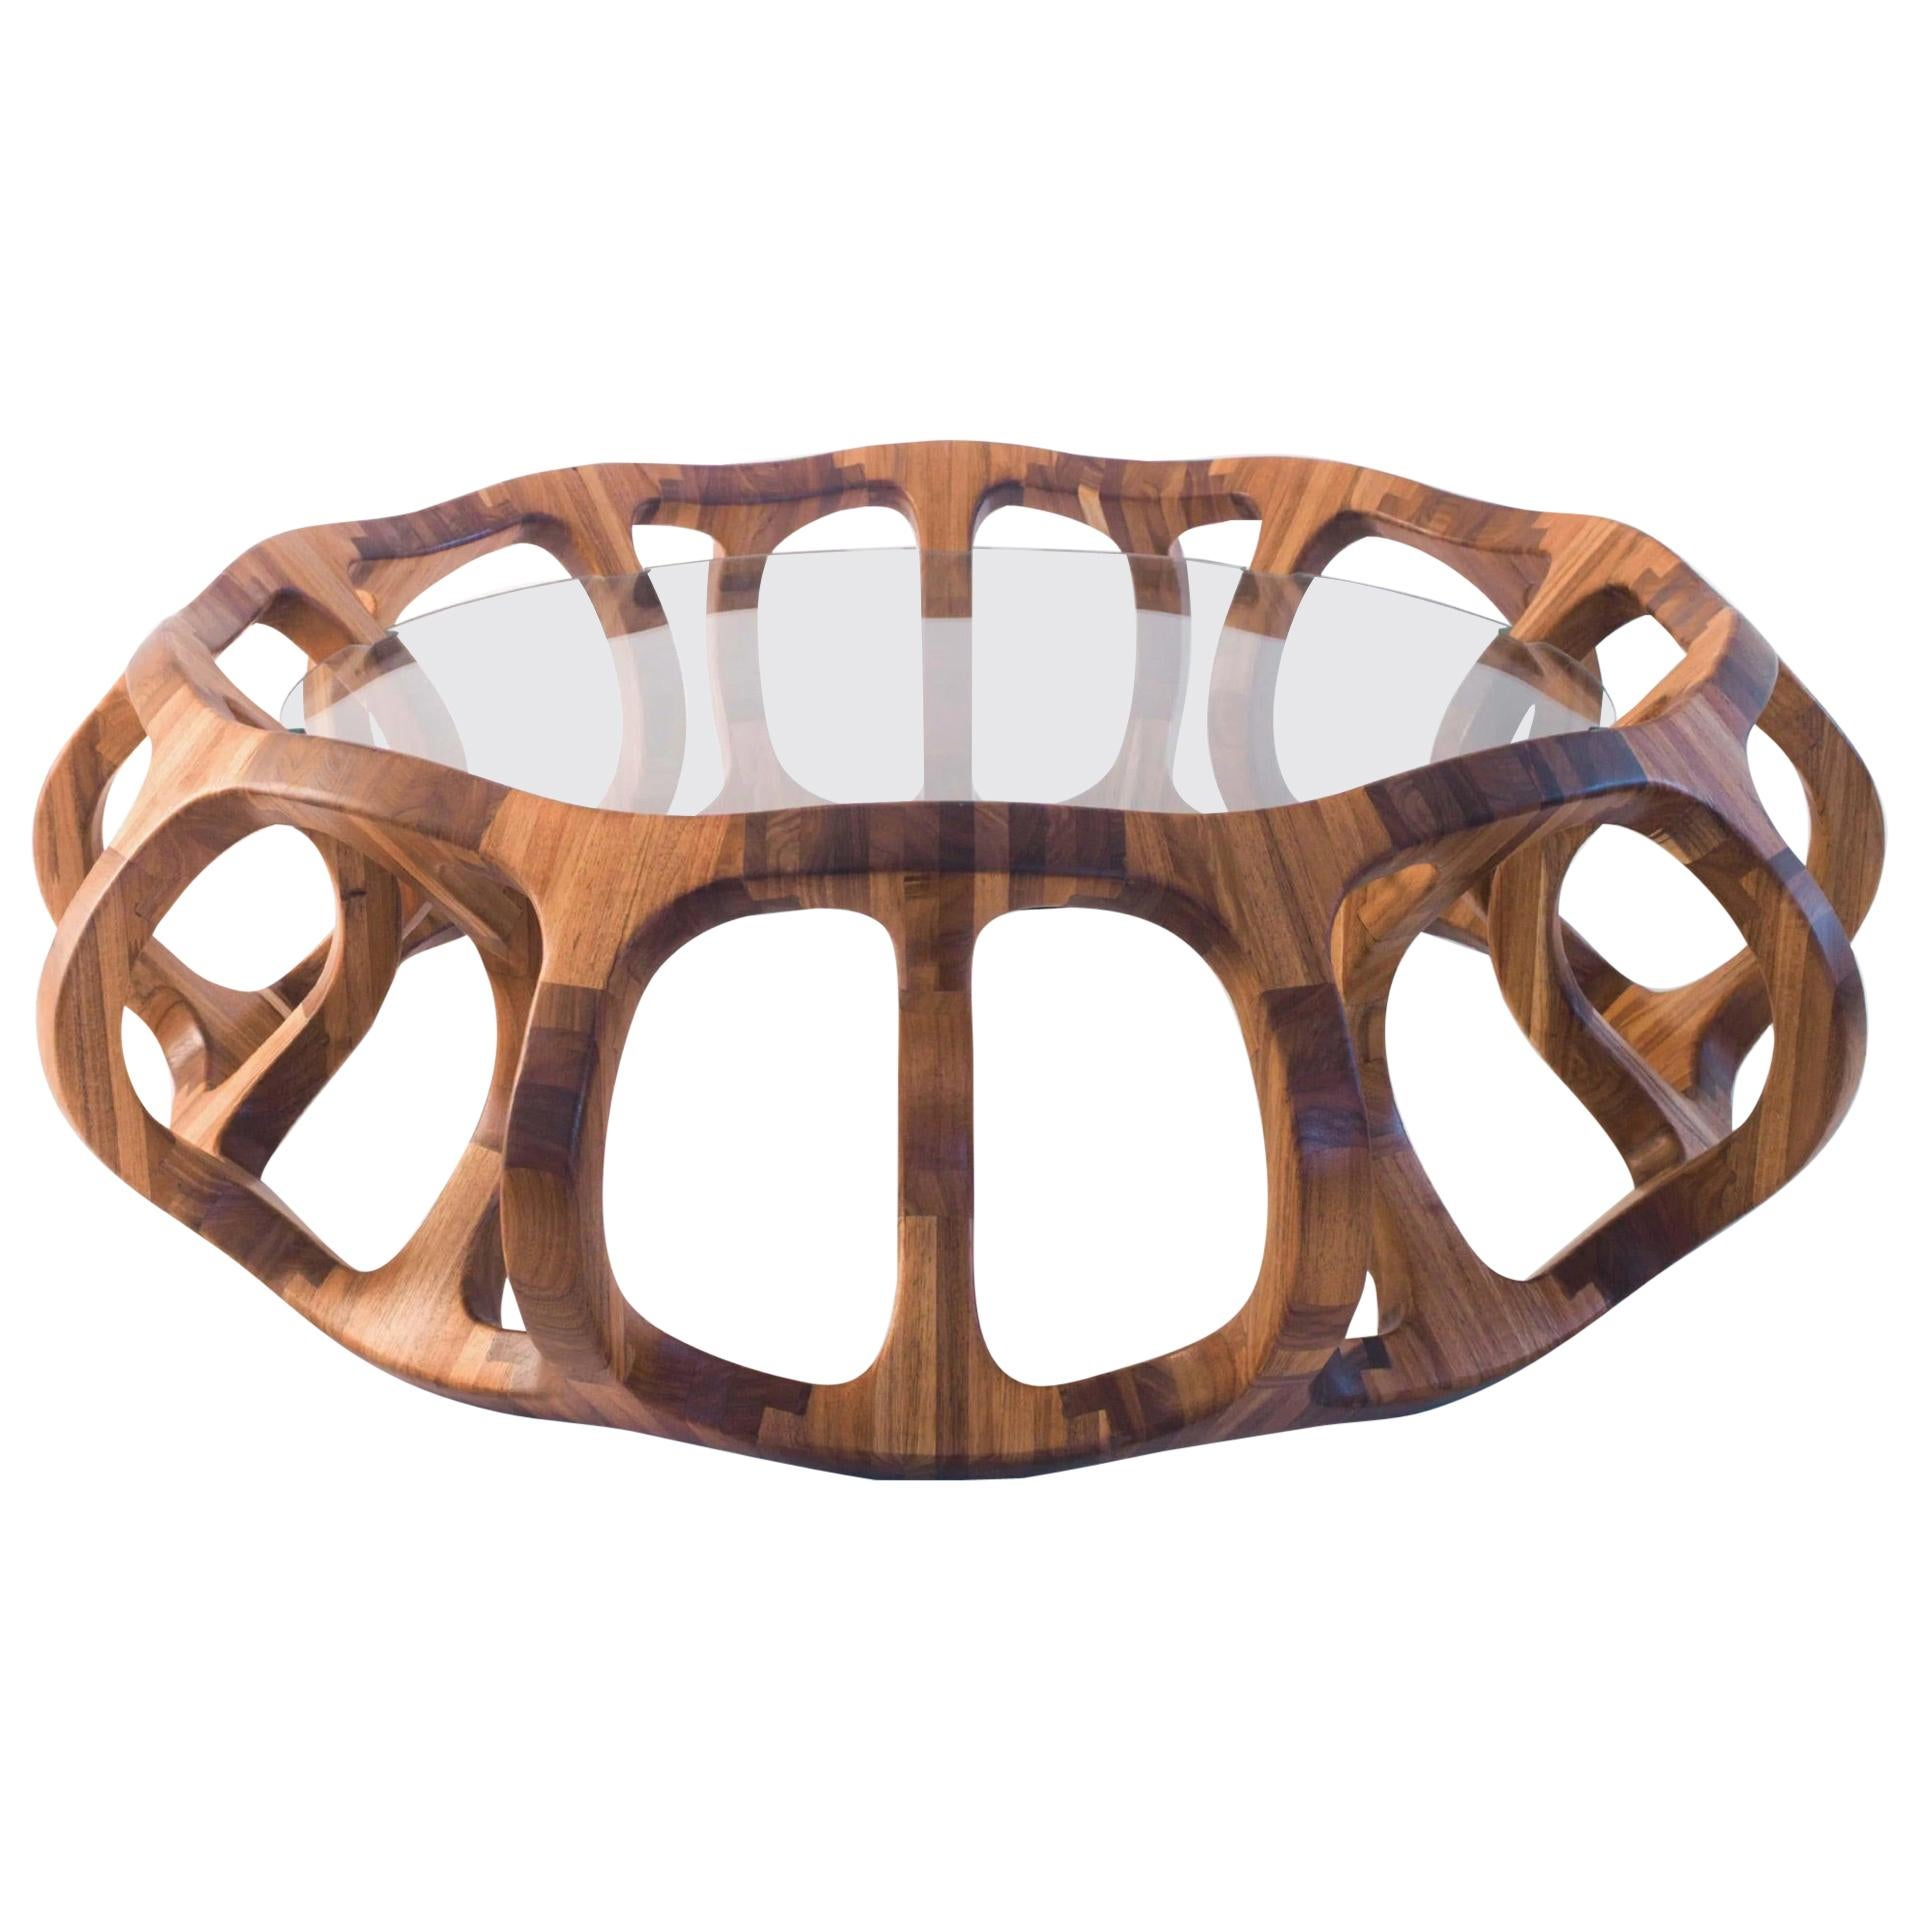 Wood Center Table hand crafted in Tzalam polished wood from Mexico City